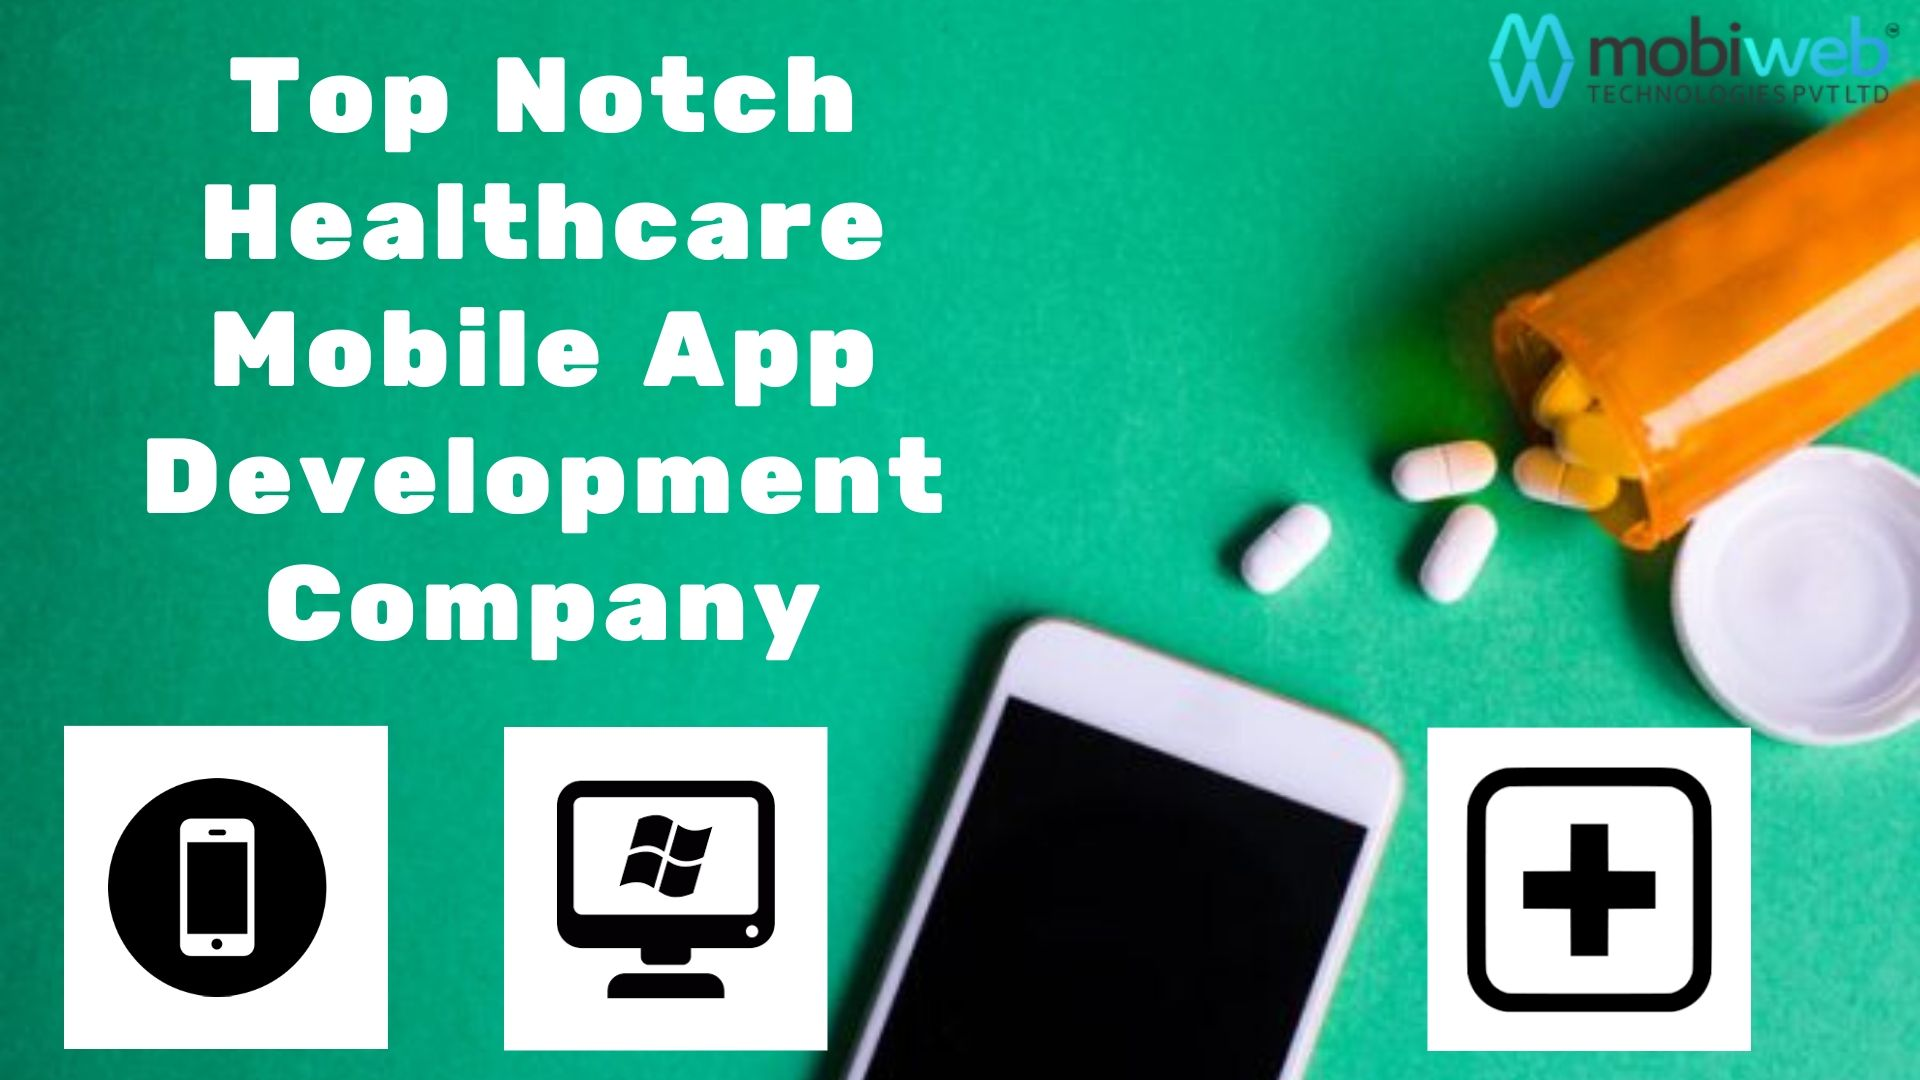 Top Notch Healthcare Mobile App Development Company